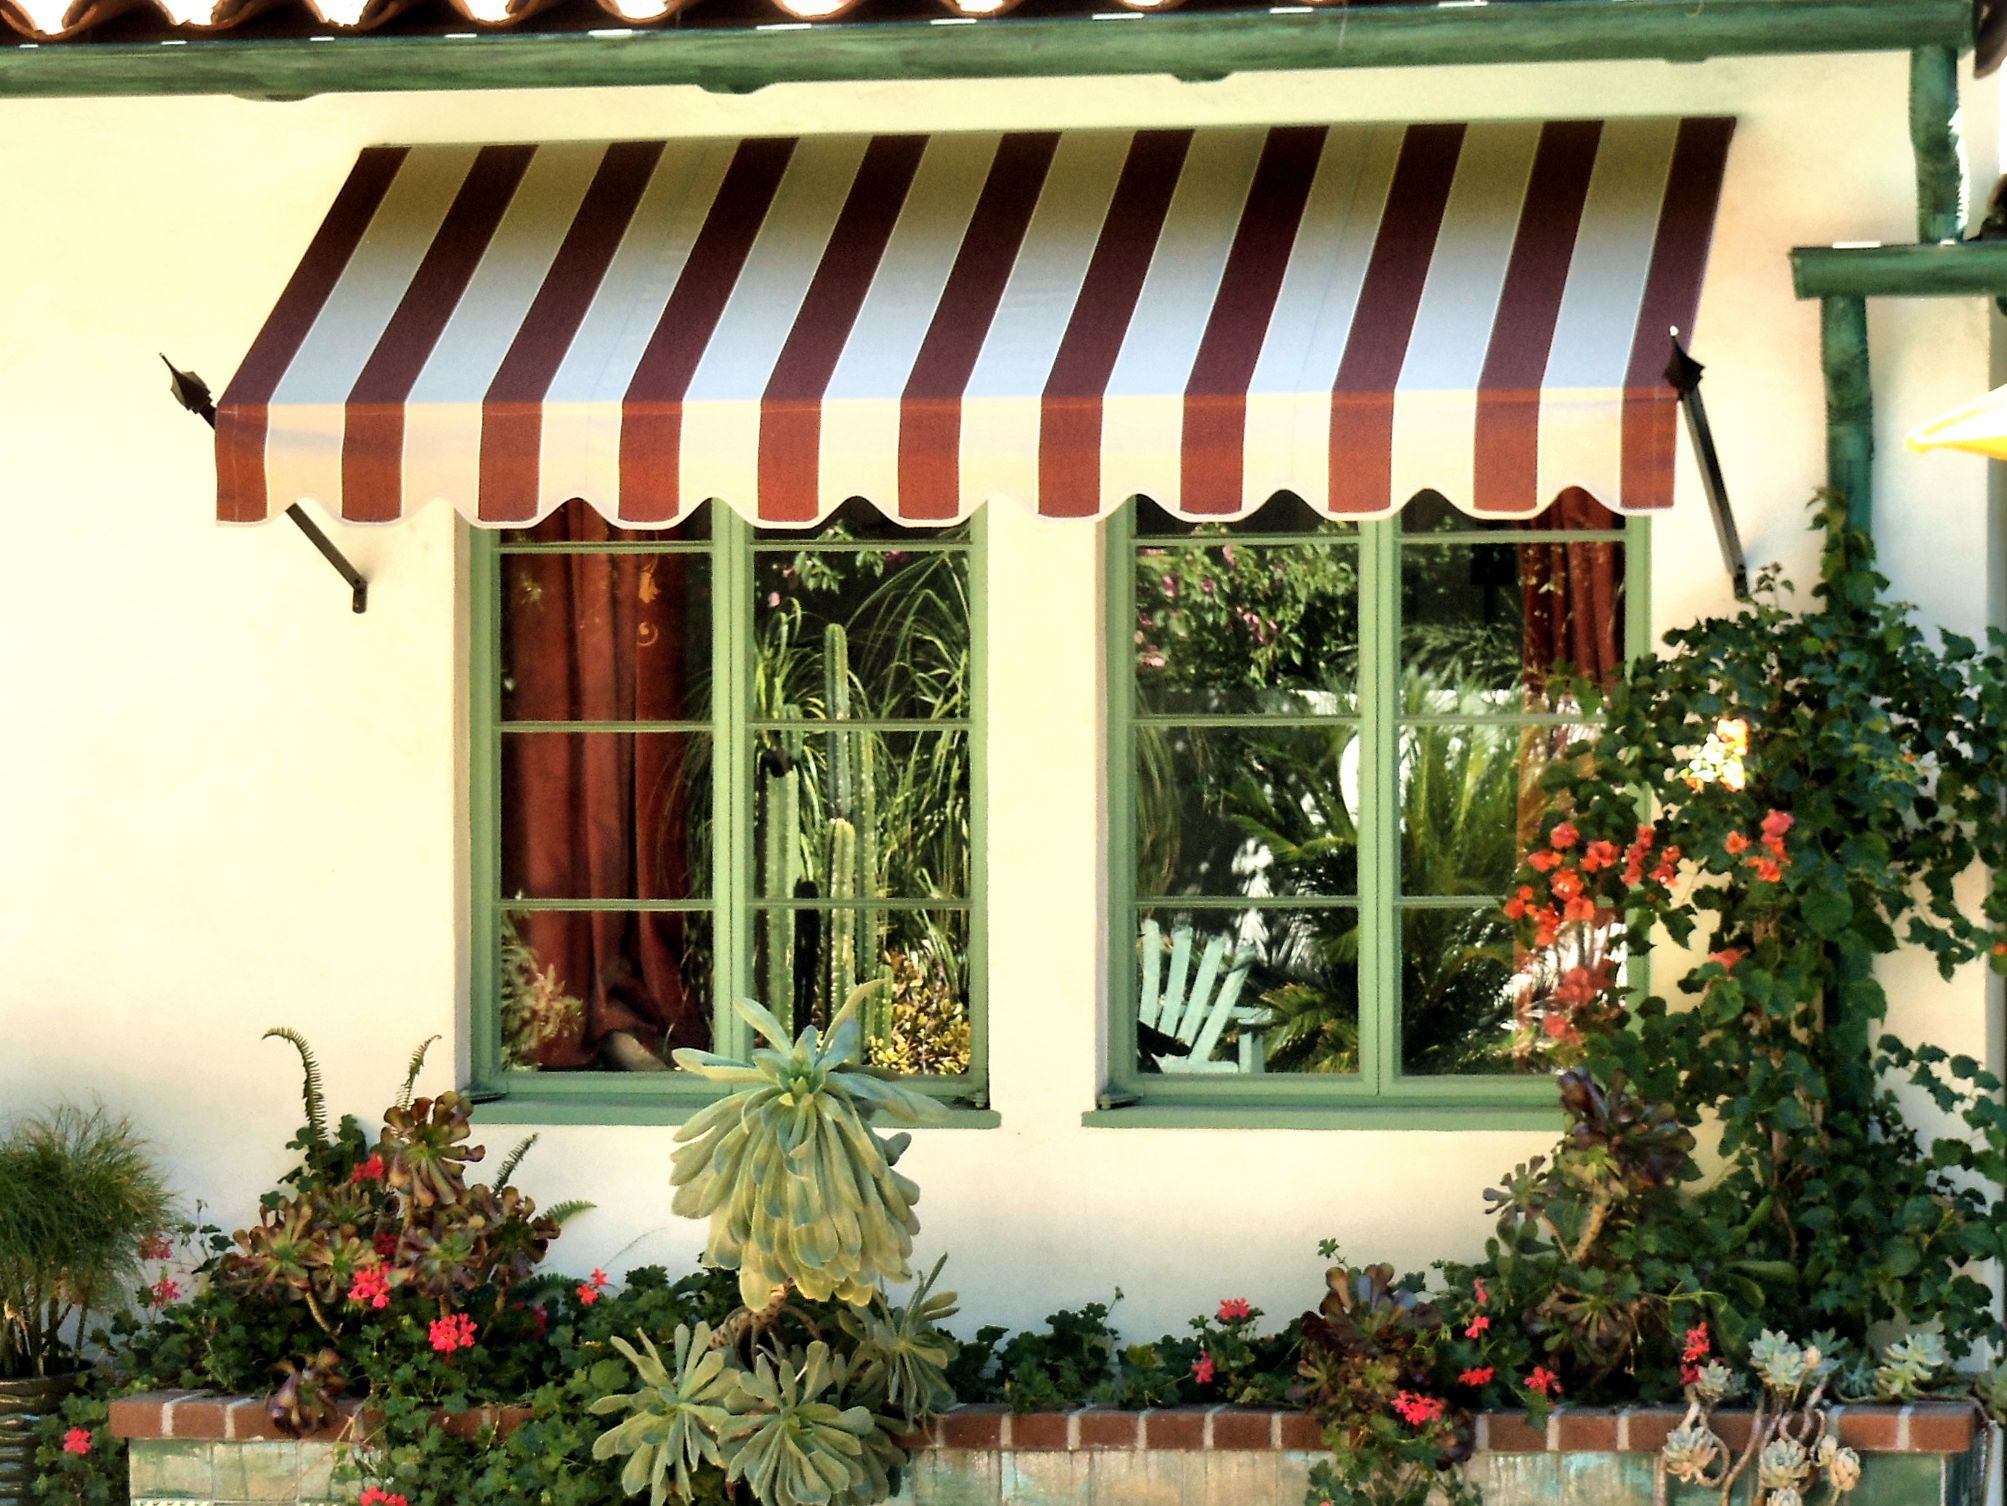 Residential Awnings Patio Covers Shades By Superior Awning Residential Awnings Custom Awnings Awning